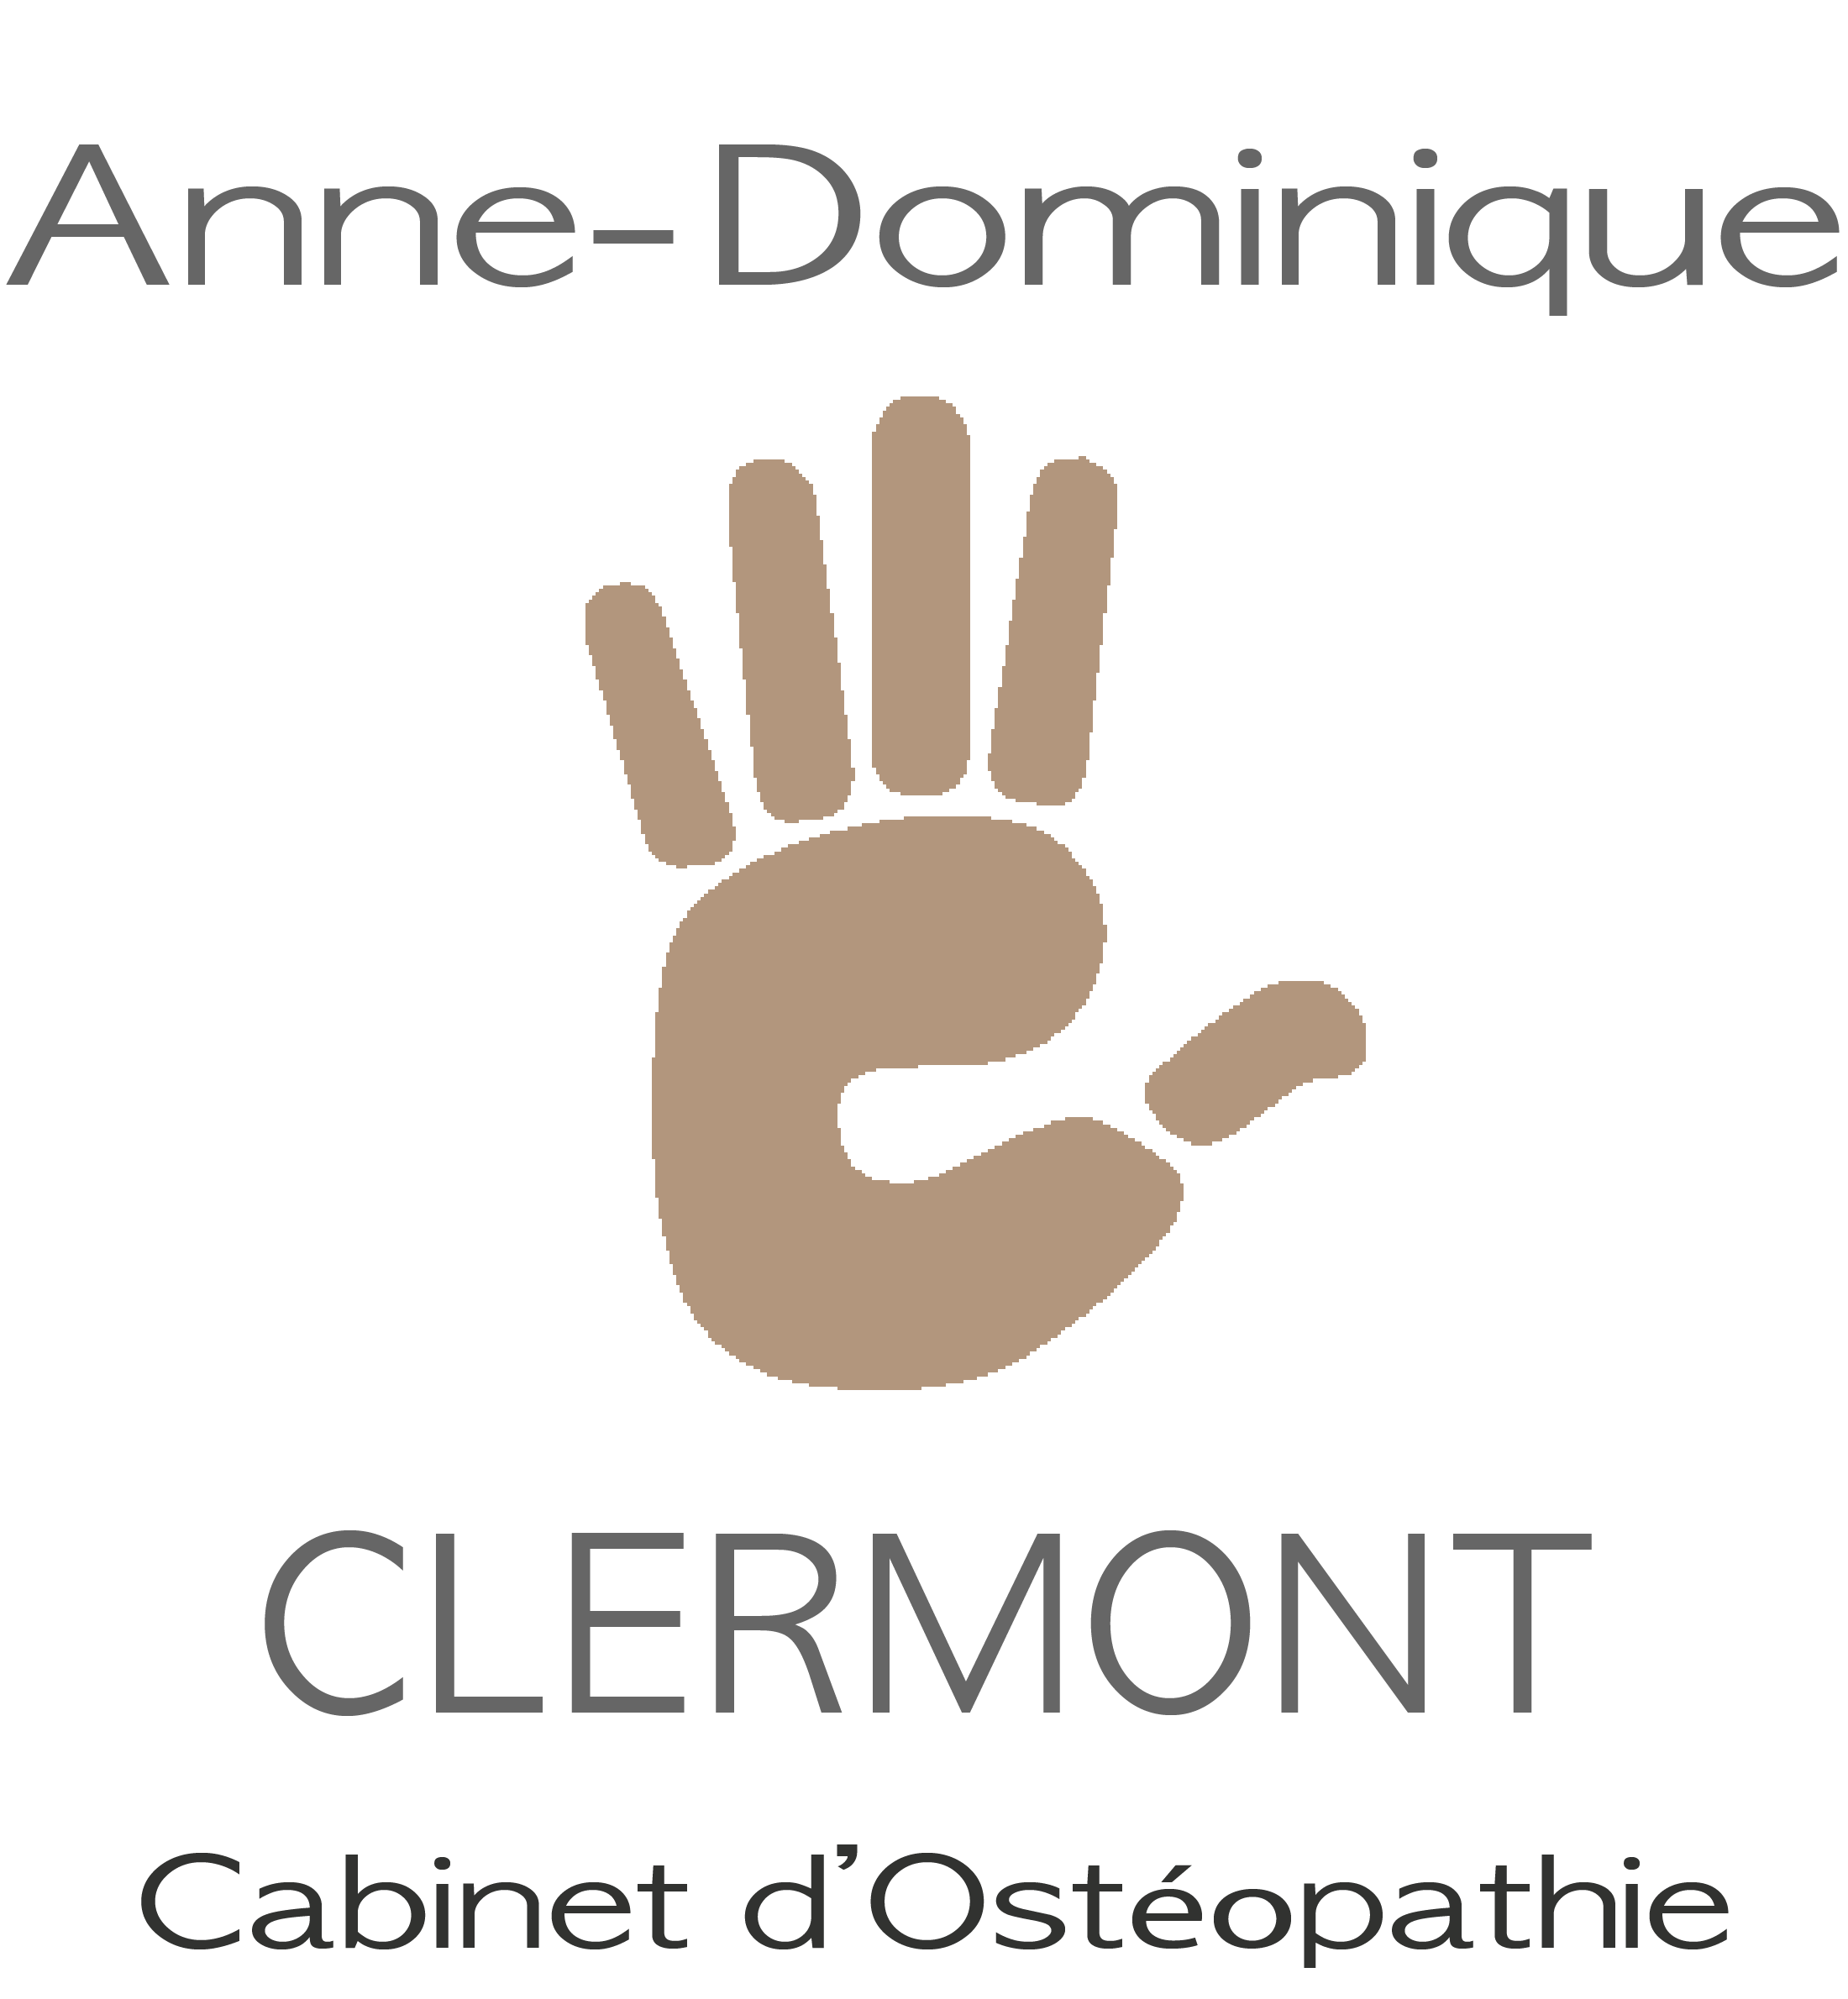 Anne-Dominique CLERMONT